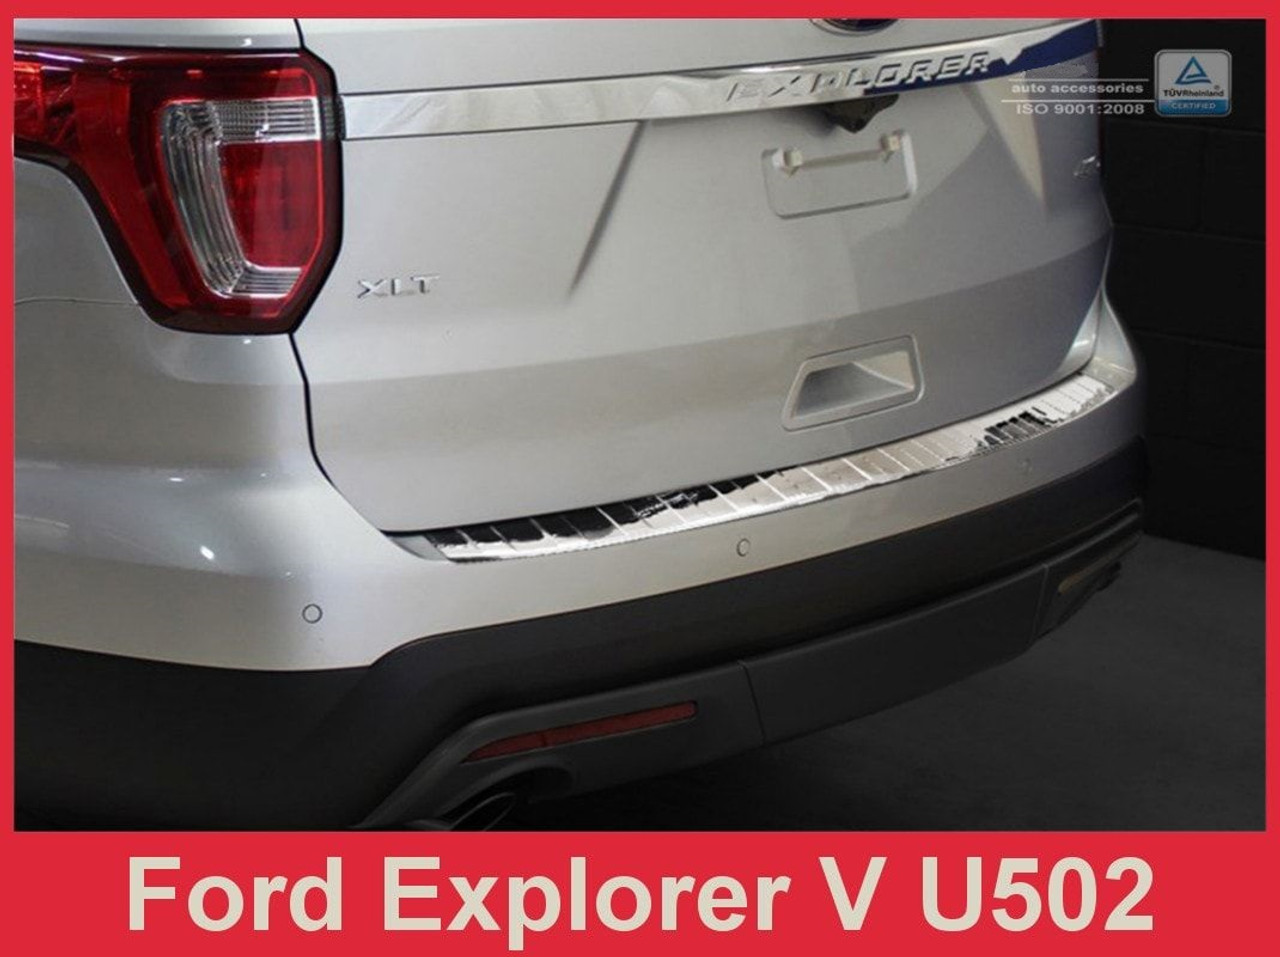 XC-70 Stainless Steel Chrome Rear Bumper Protector Scratch Guard